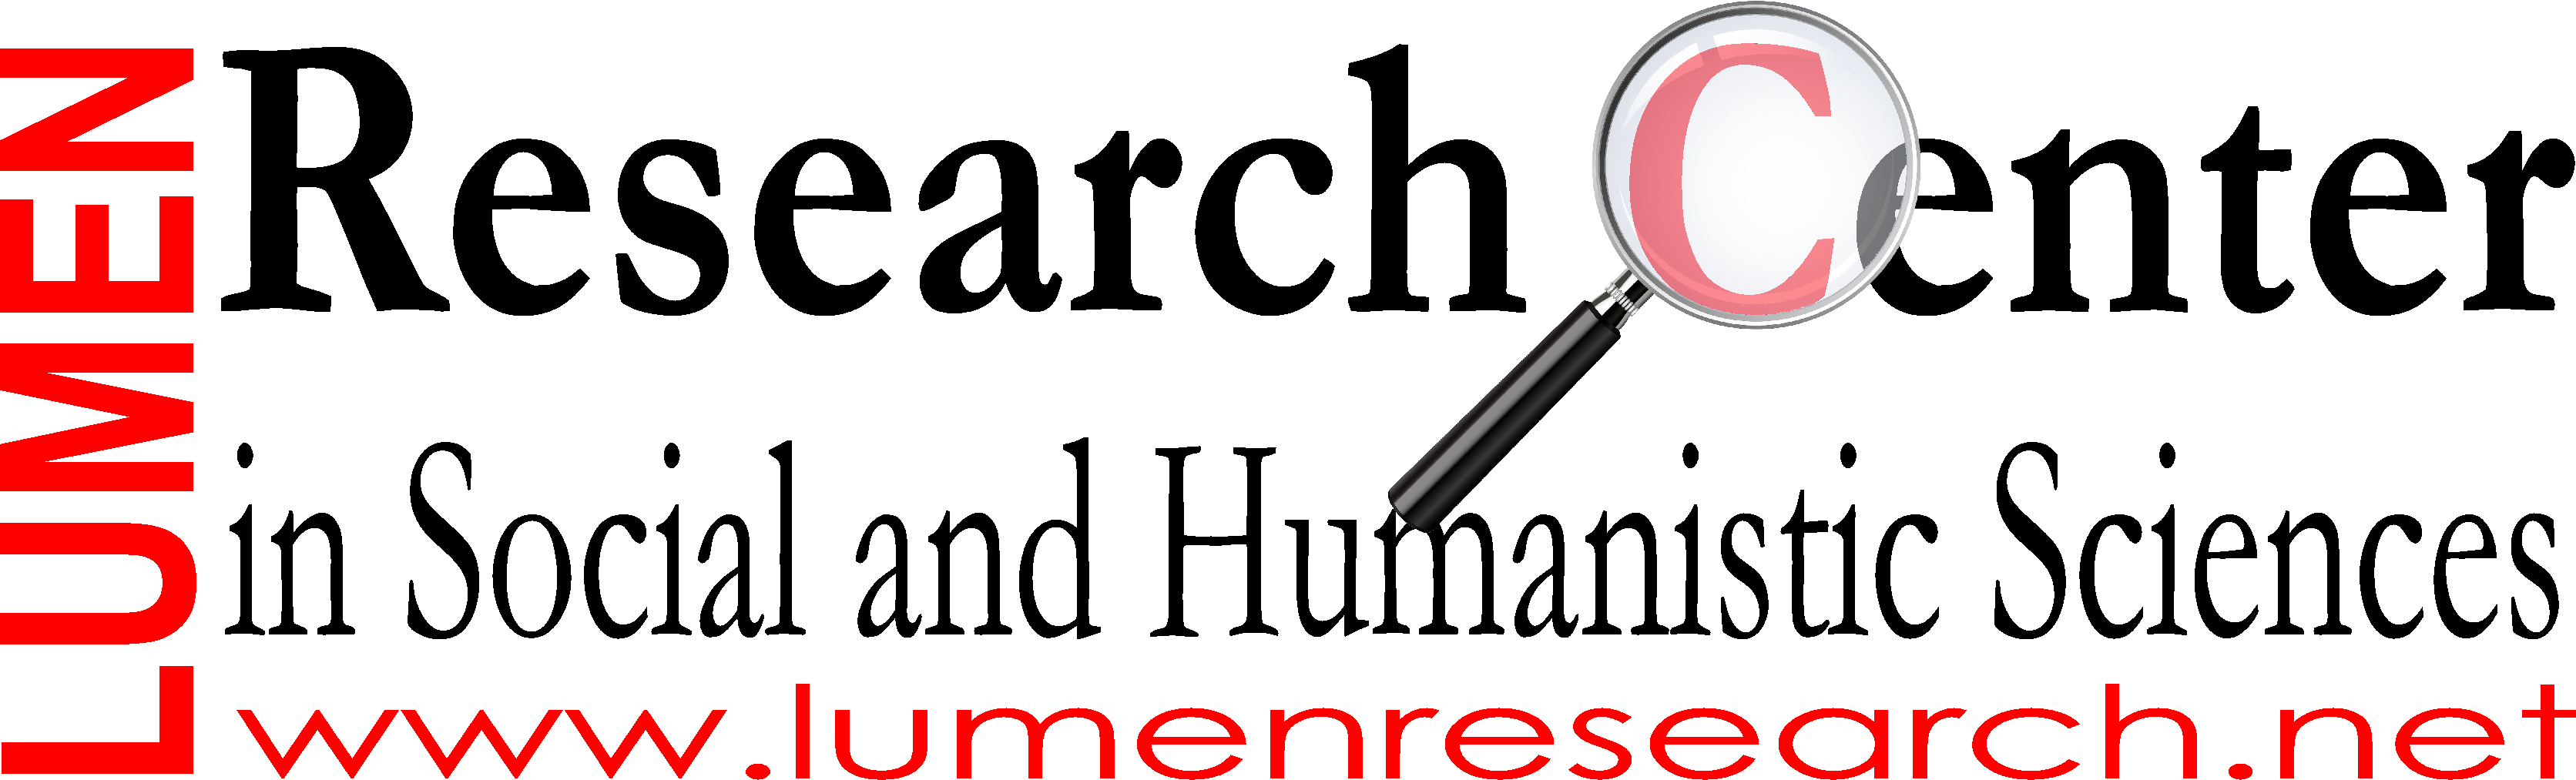 Lumen-research-center-logo